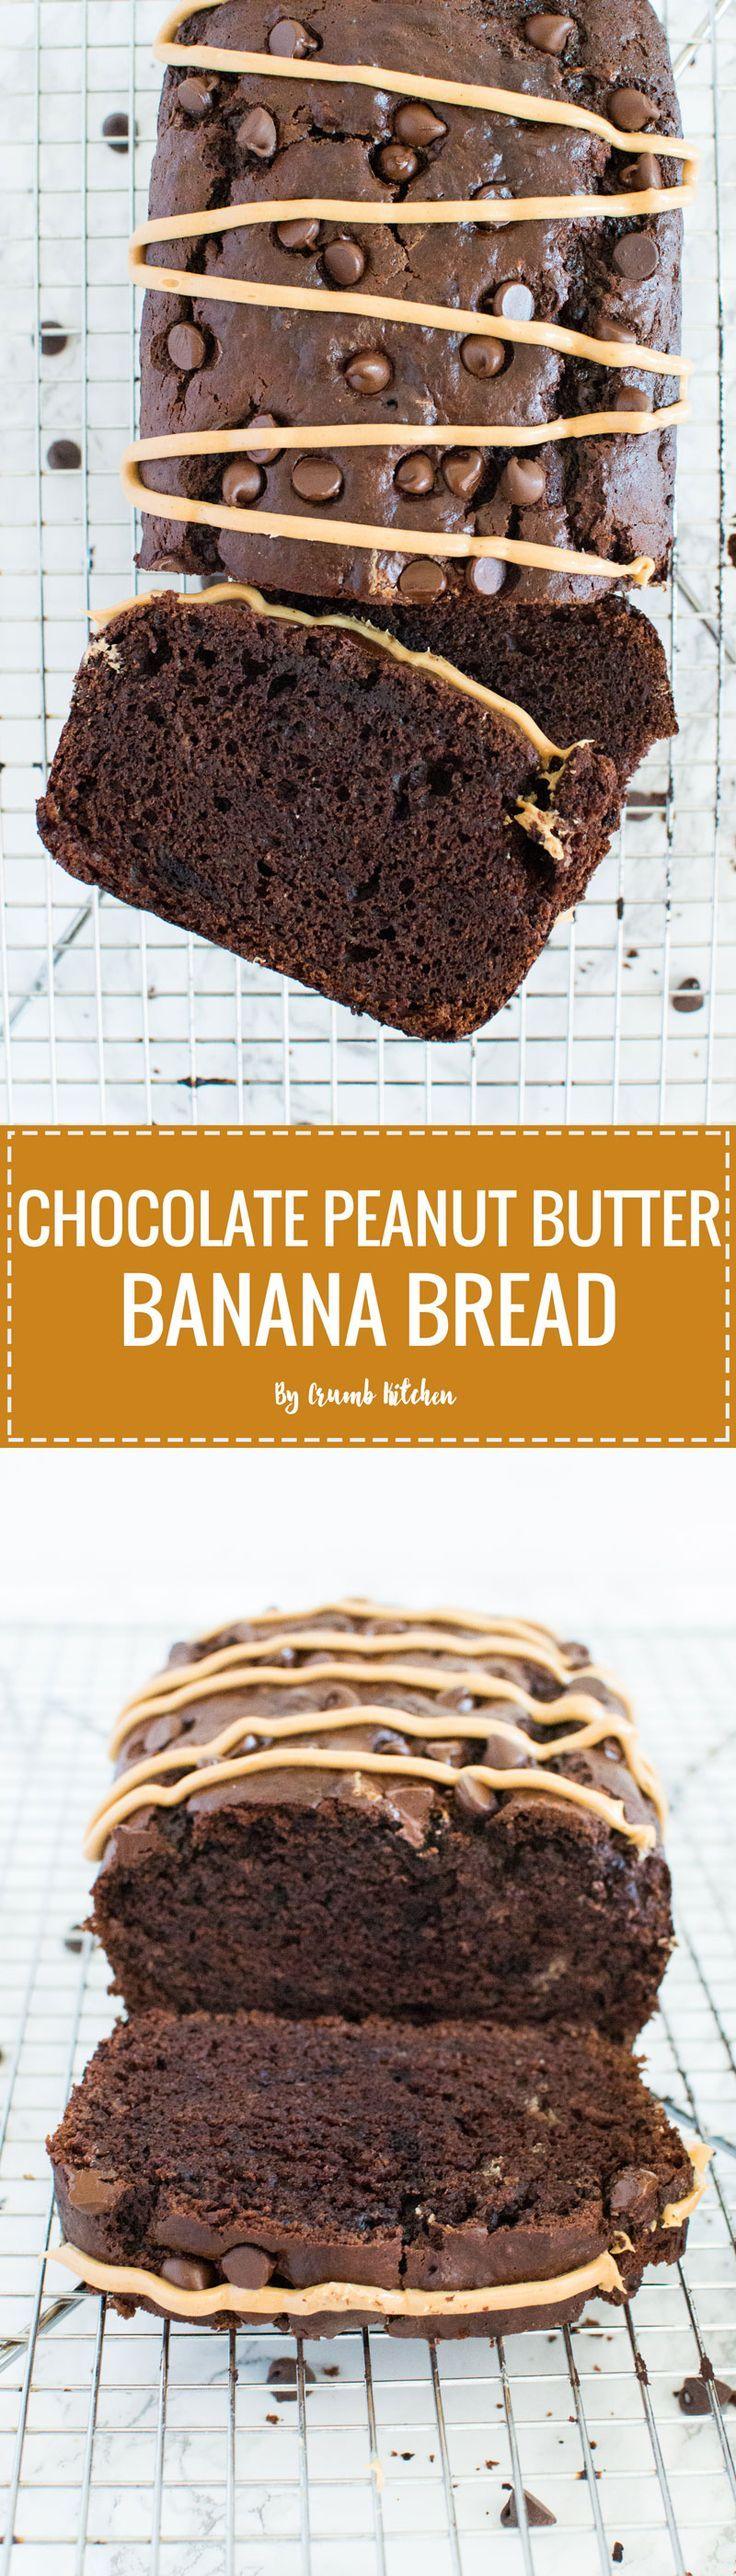 Pure cocoa and just-melted peanut butter turn typical banana bread into this indulgent, cake-like Chocolate Peanut Butter Banana Bread. | http://crumbkitchen.com